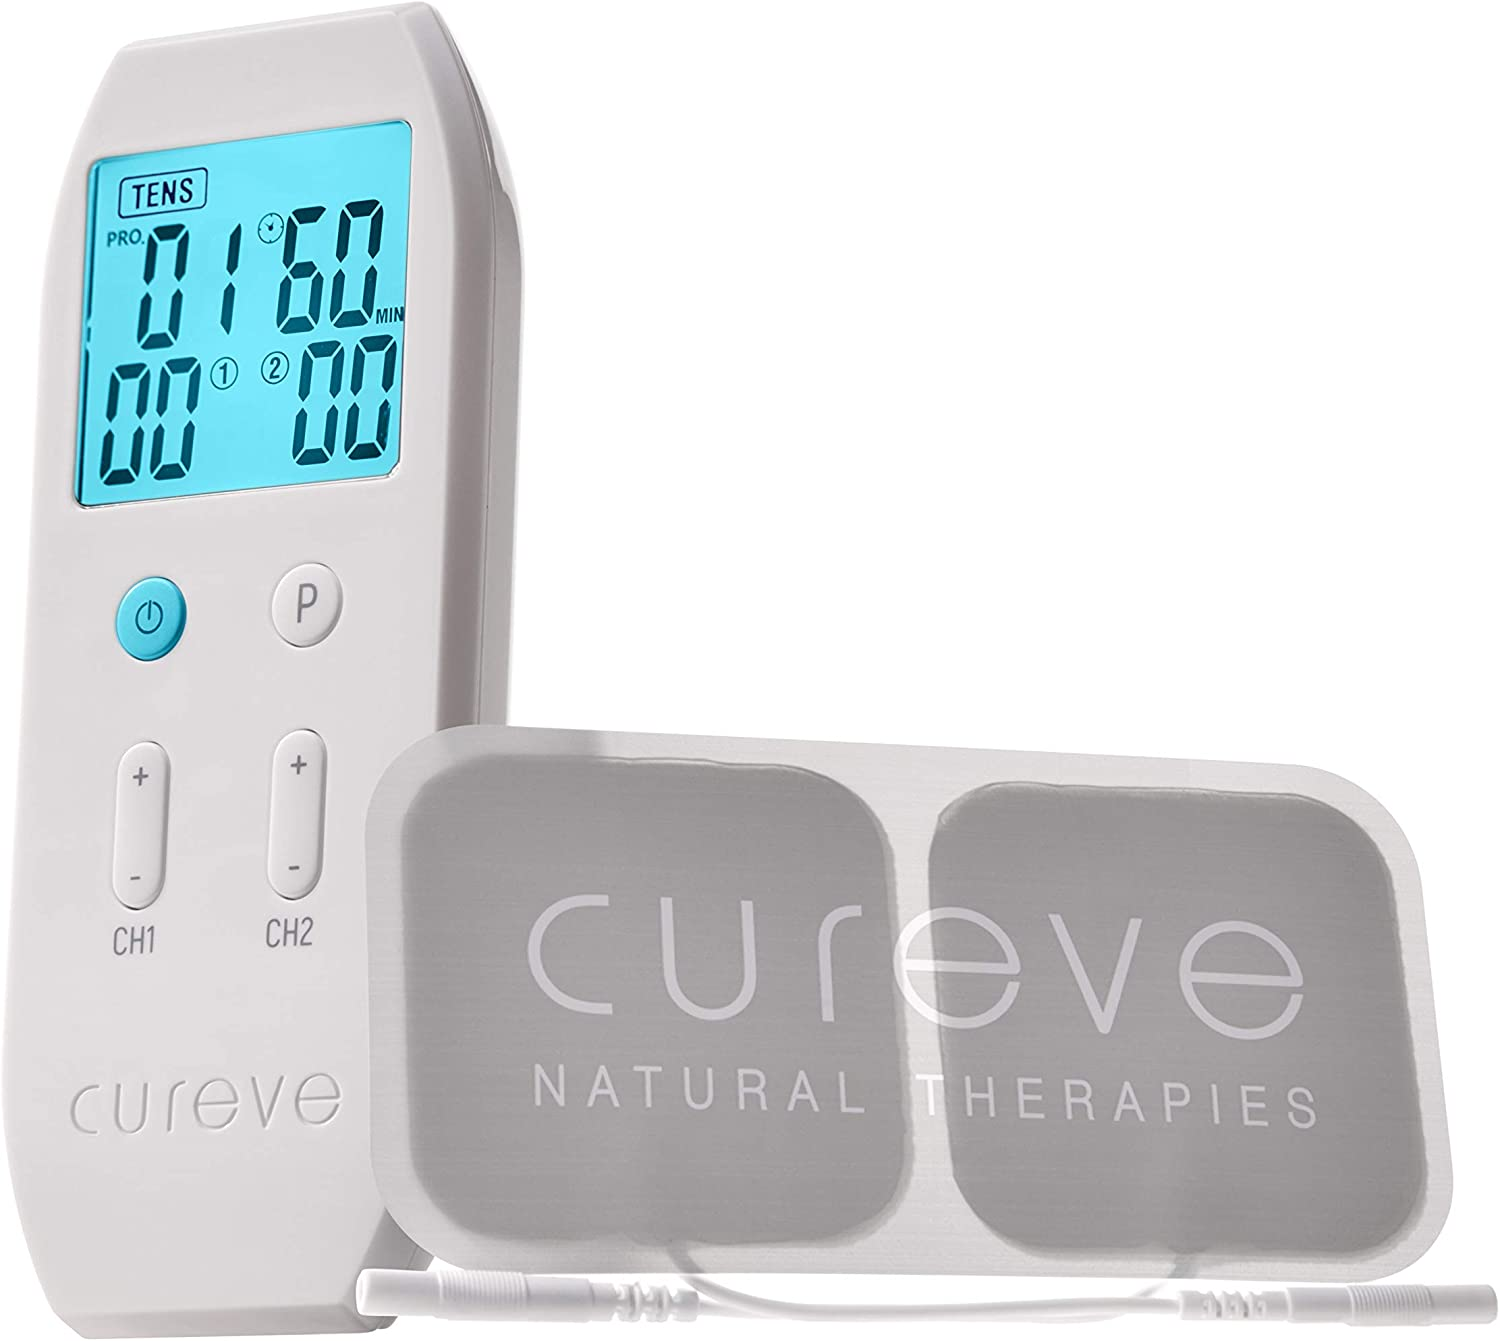 Cureve TENS + EMS Unit Popular standard Max 54% OFF Combination System and Relief Pain Muscle